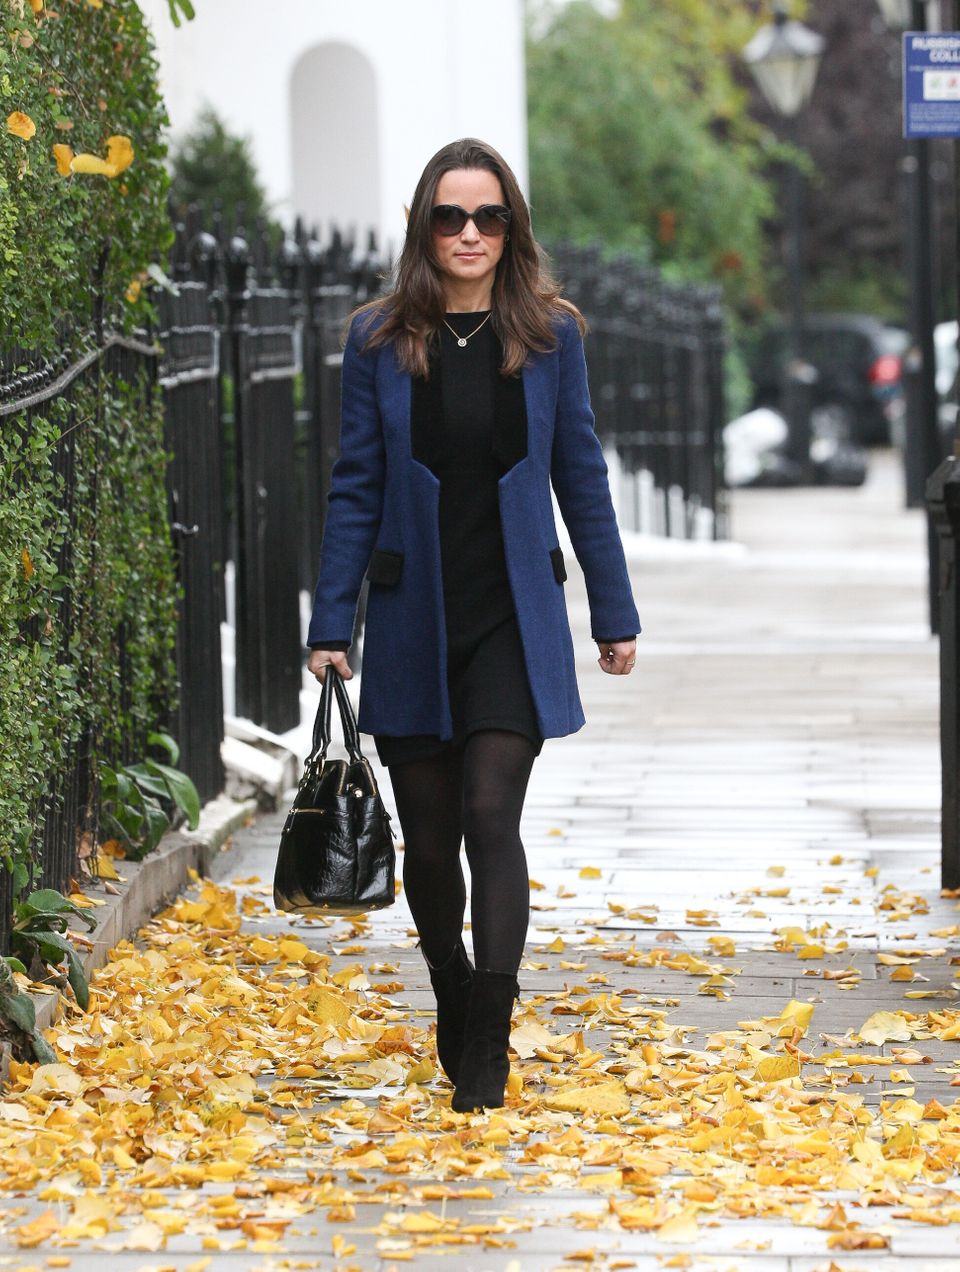 Pippa Middleton's Style Evolution Through The Years 26